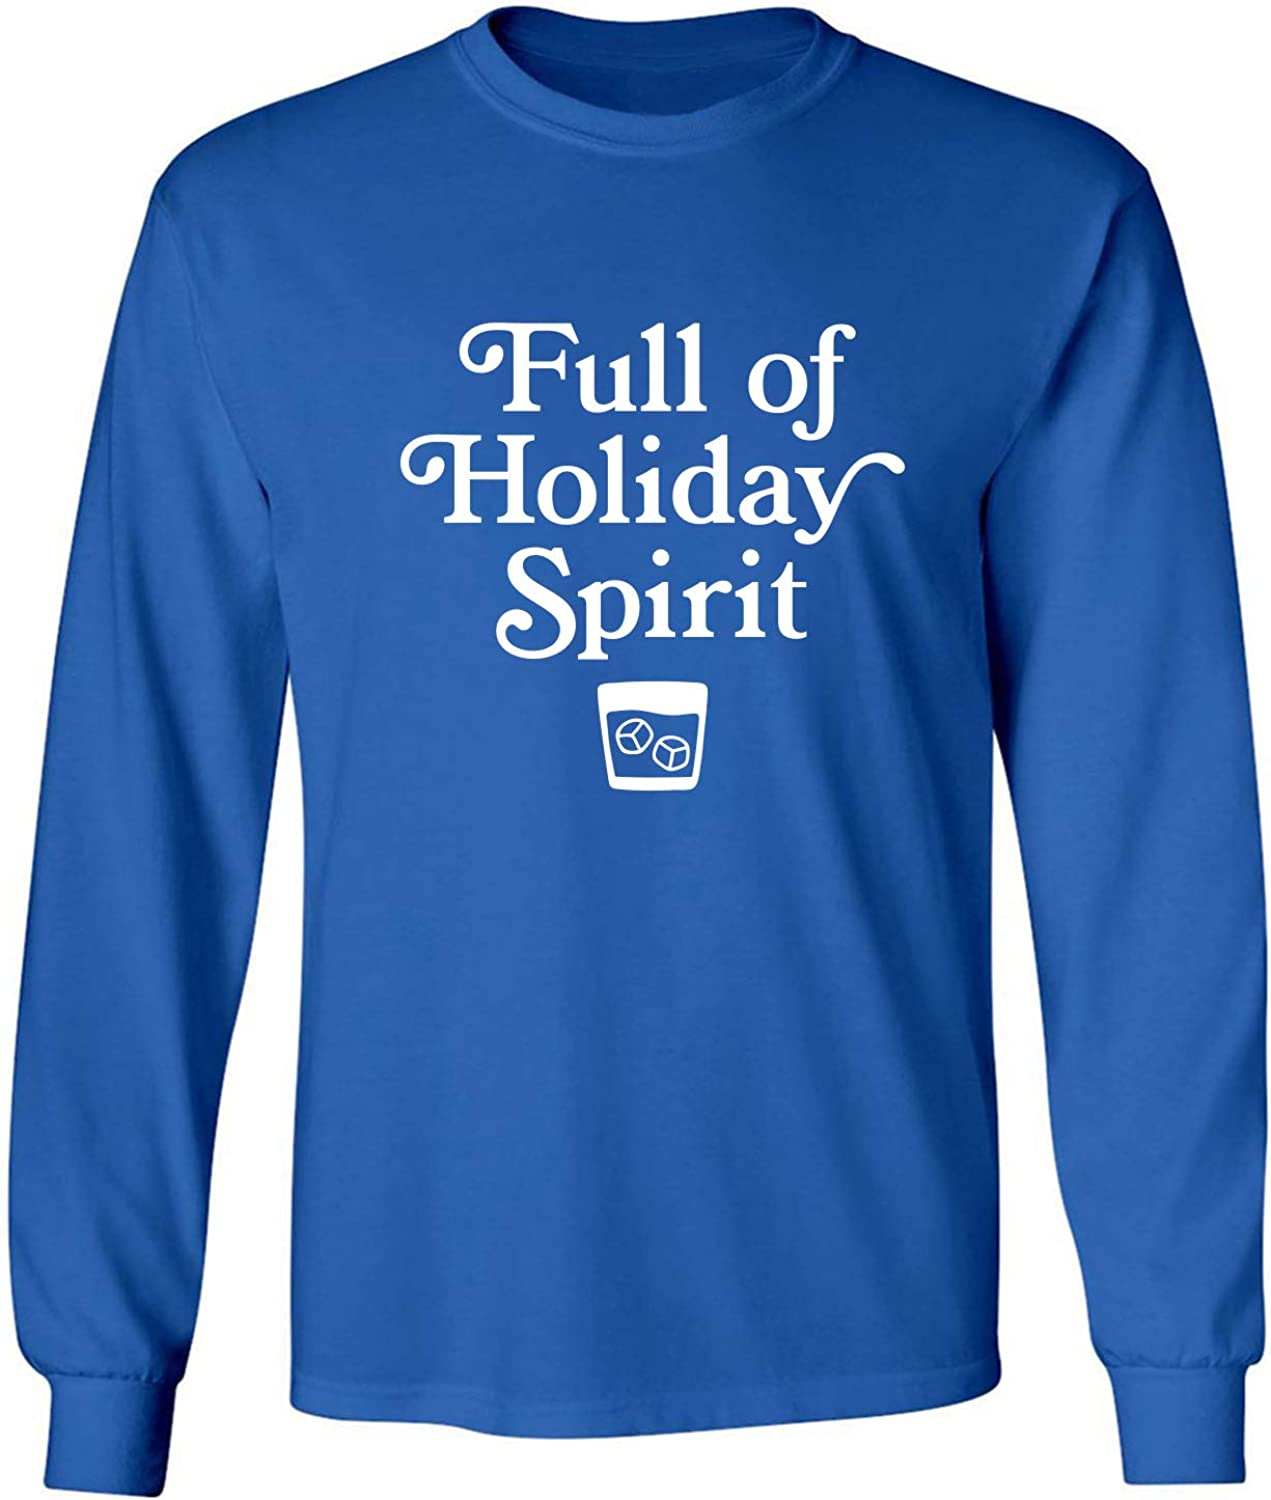 Full of Holiday Spirit Adult Long Sleeve T-Shirt in Royal - XXXXX-Large